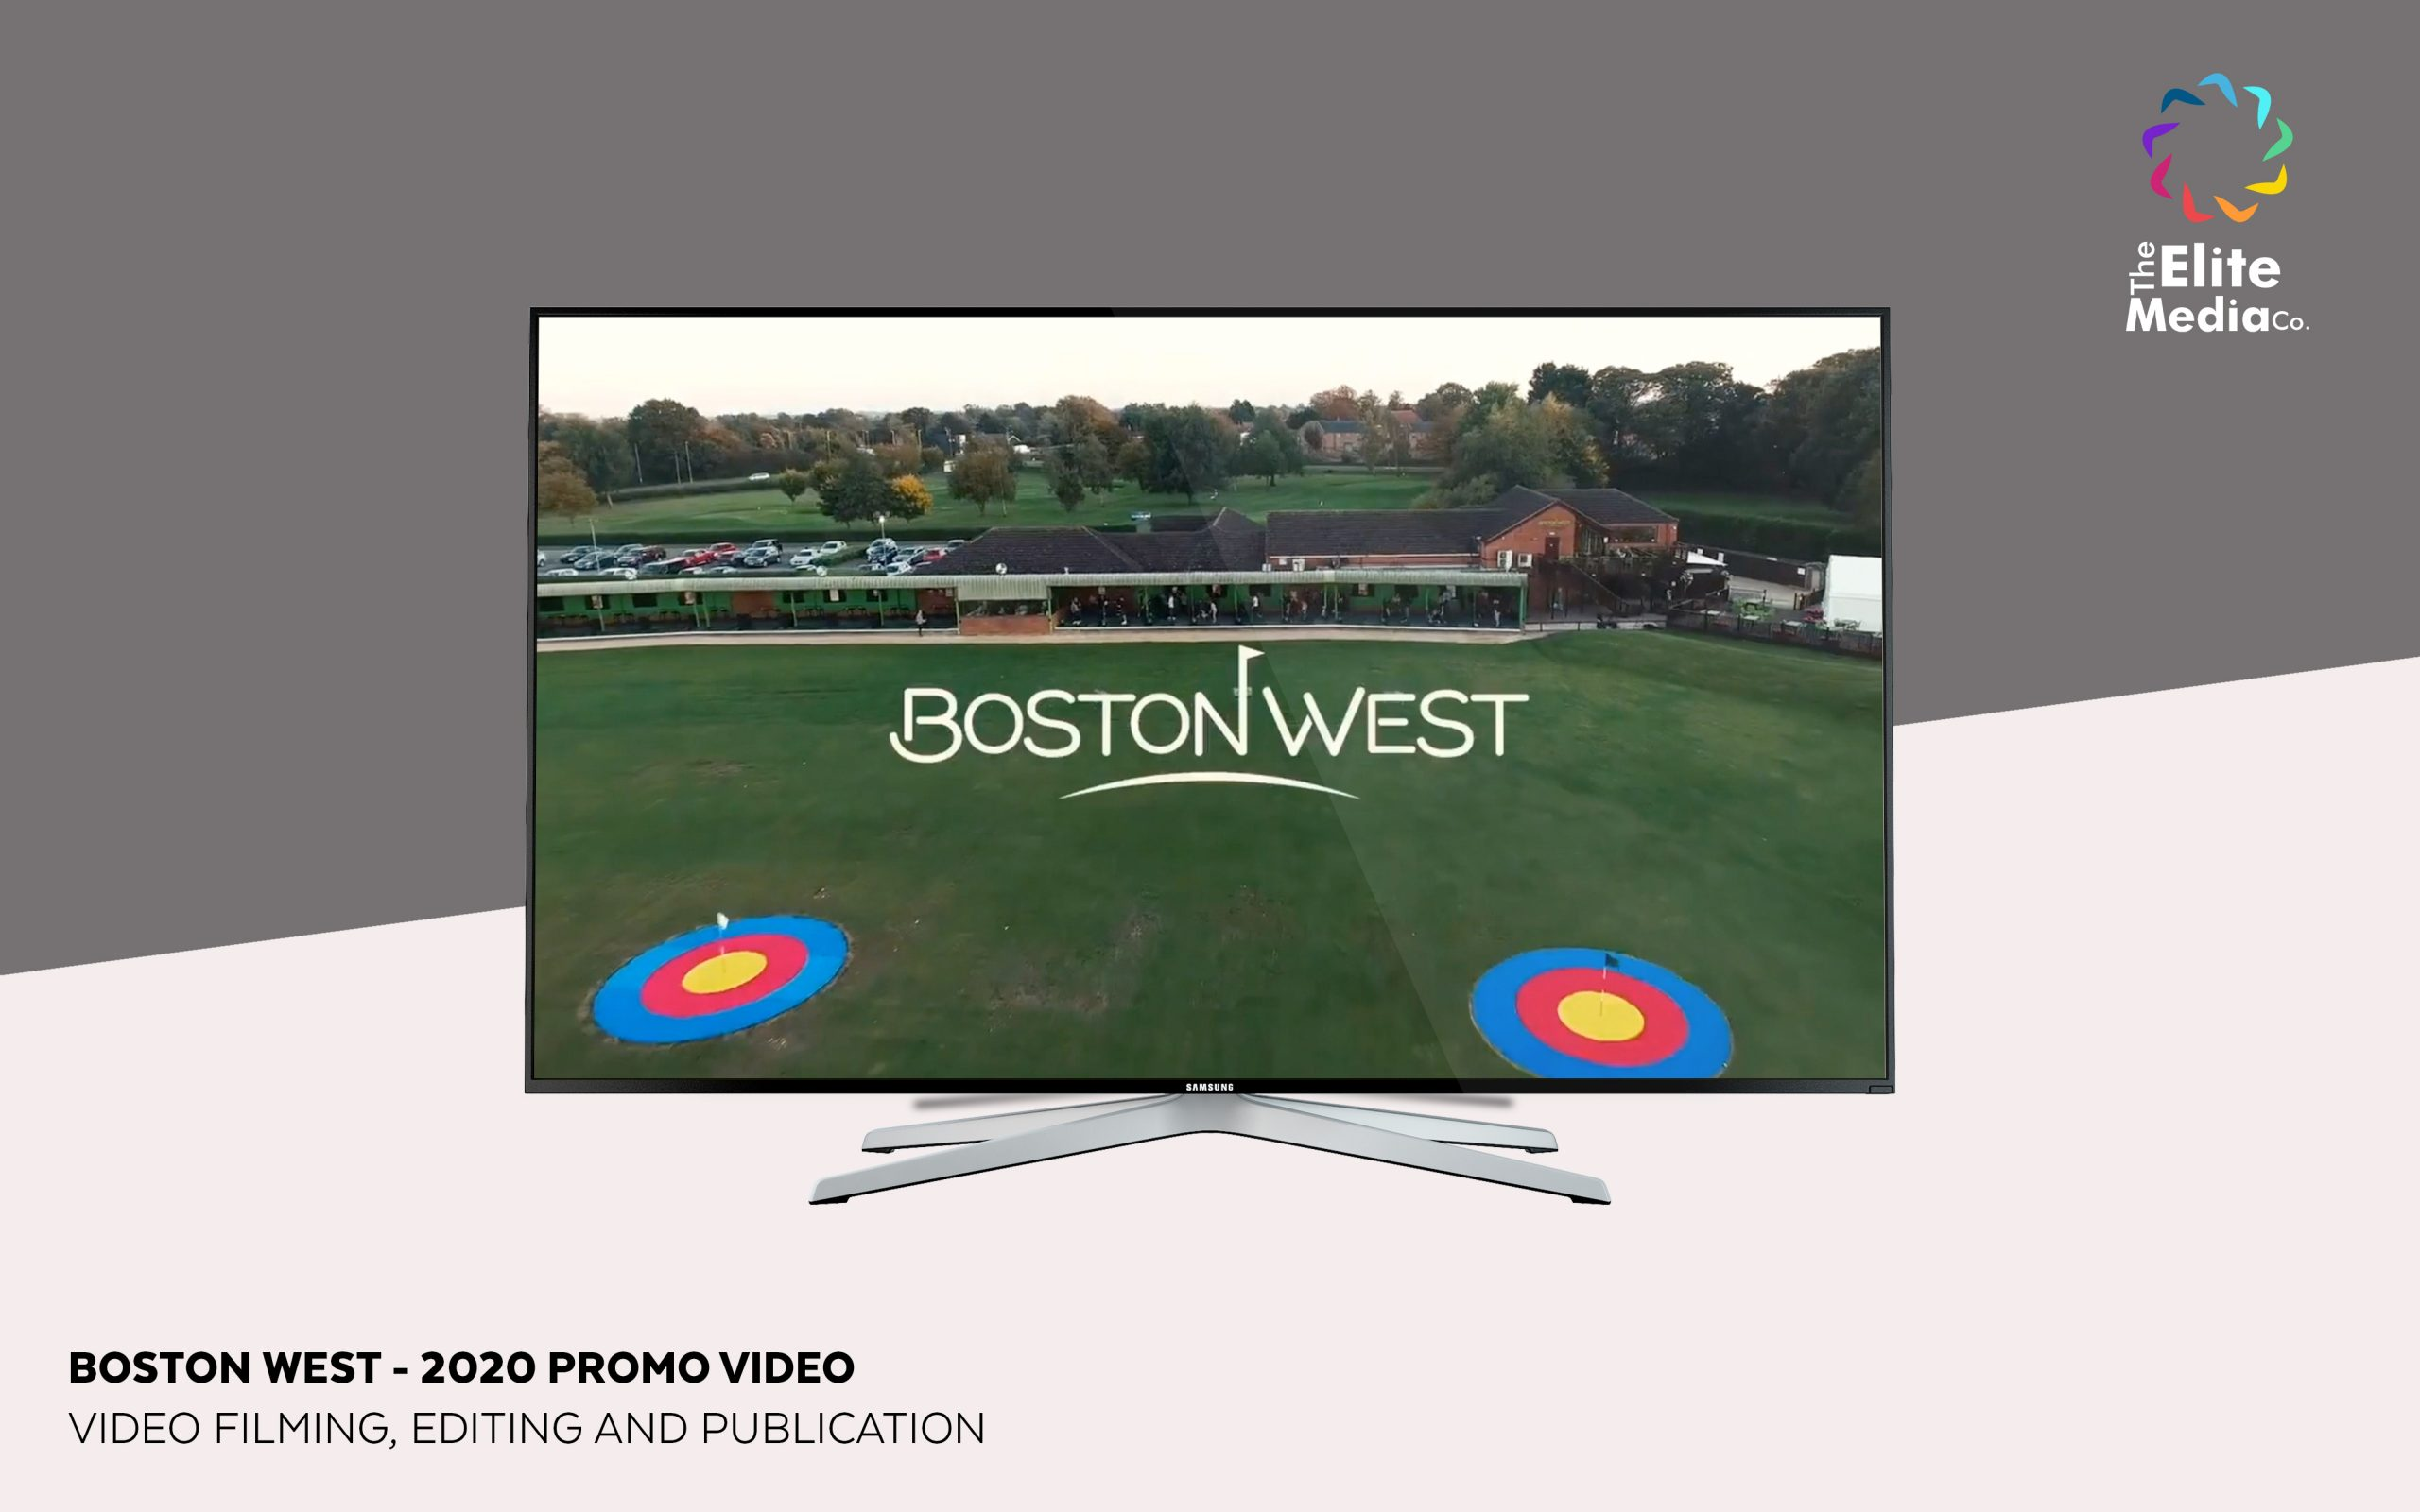 Boston West – 2020 Promo Video